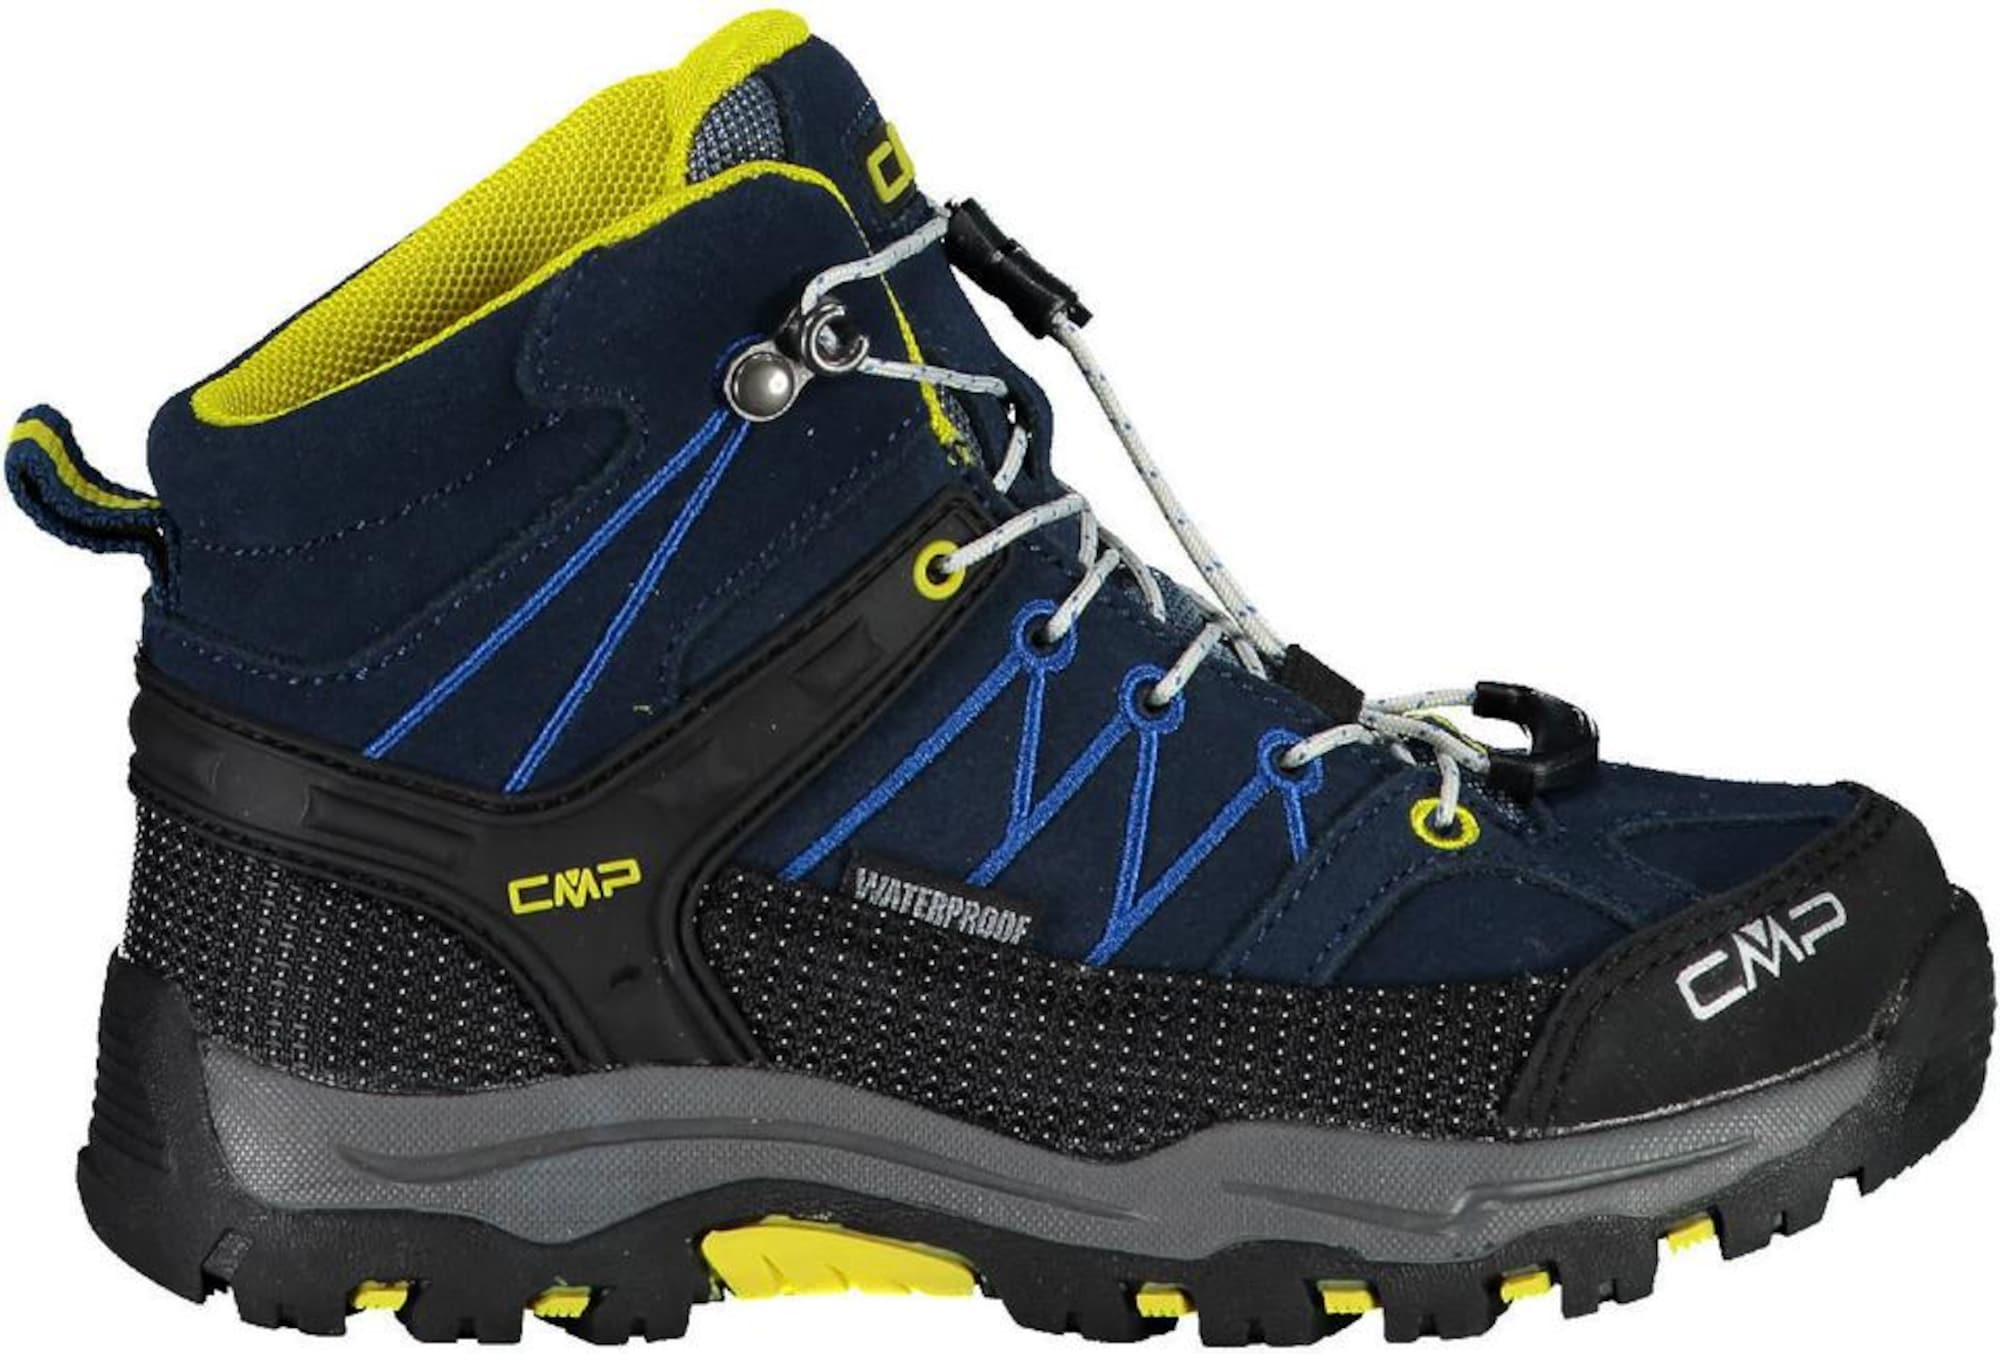 cmp - Outdoorstiefel 'Rigel Mid WP'